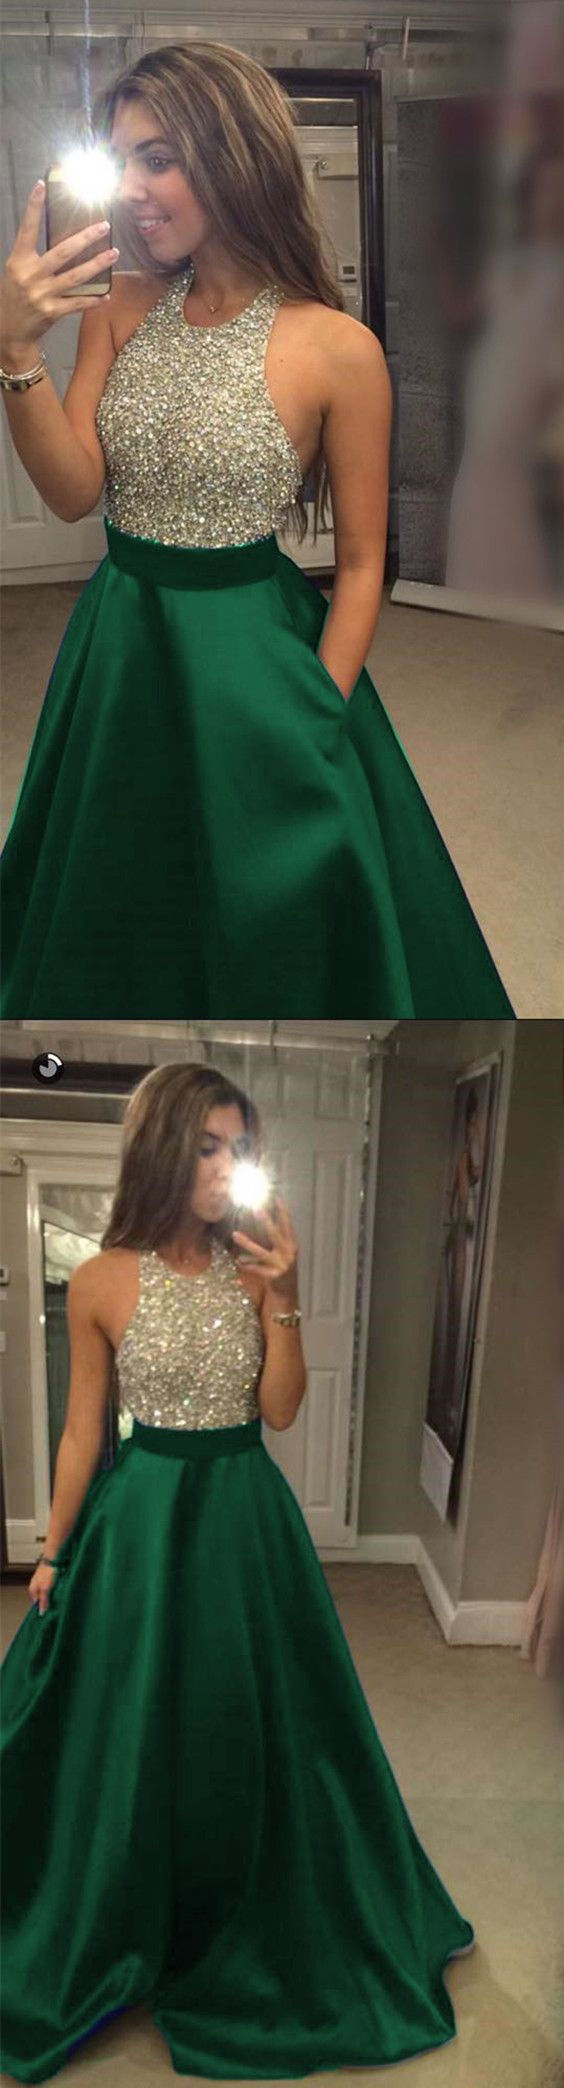 Emerald Green Satin Beaded Halter Prom Dresses Long Evening Gowns For Juniors 2018